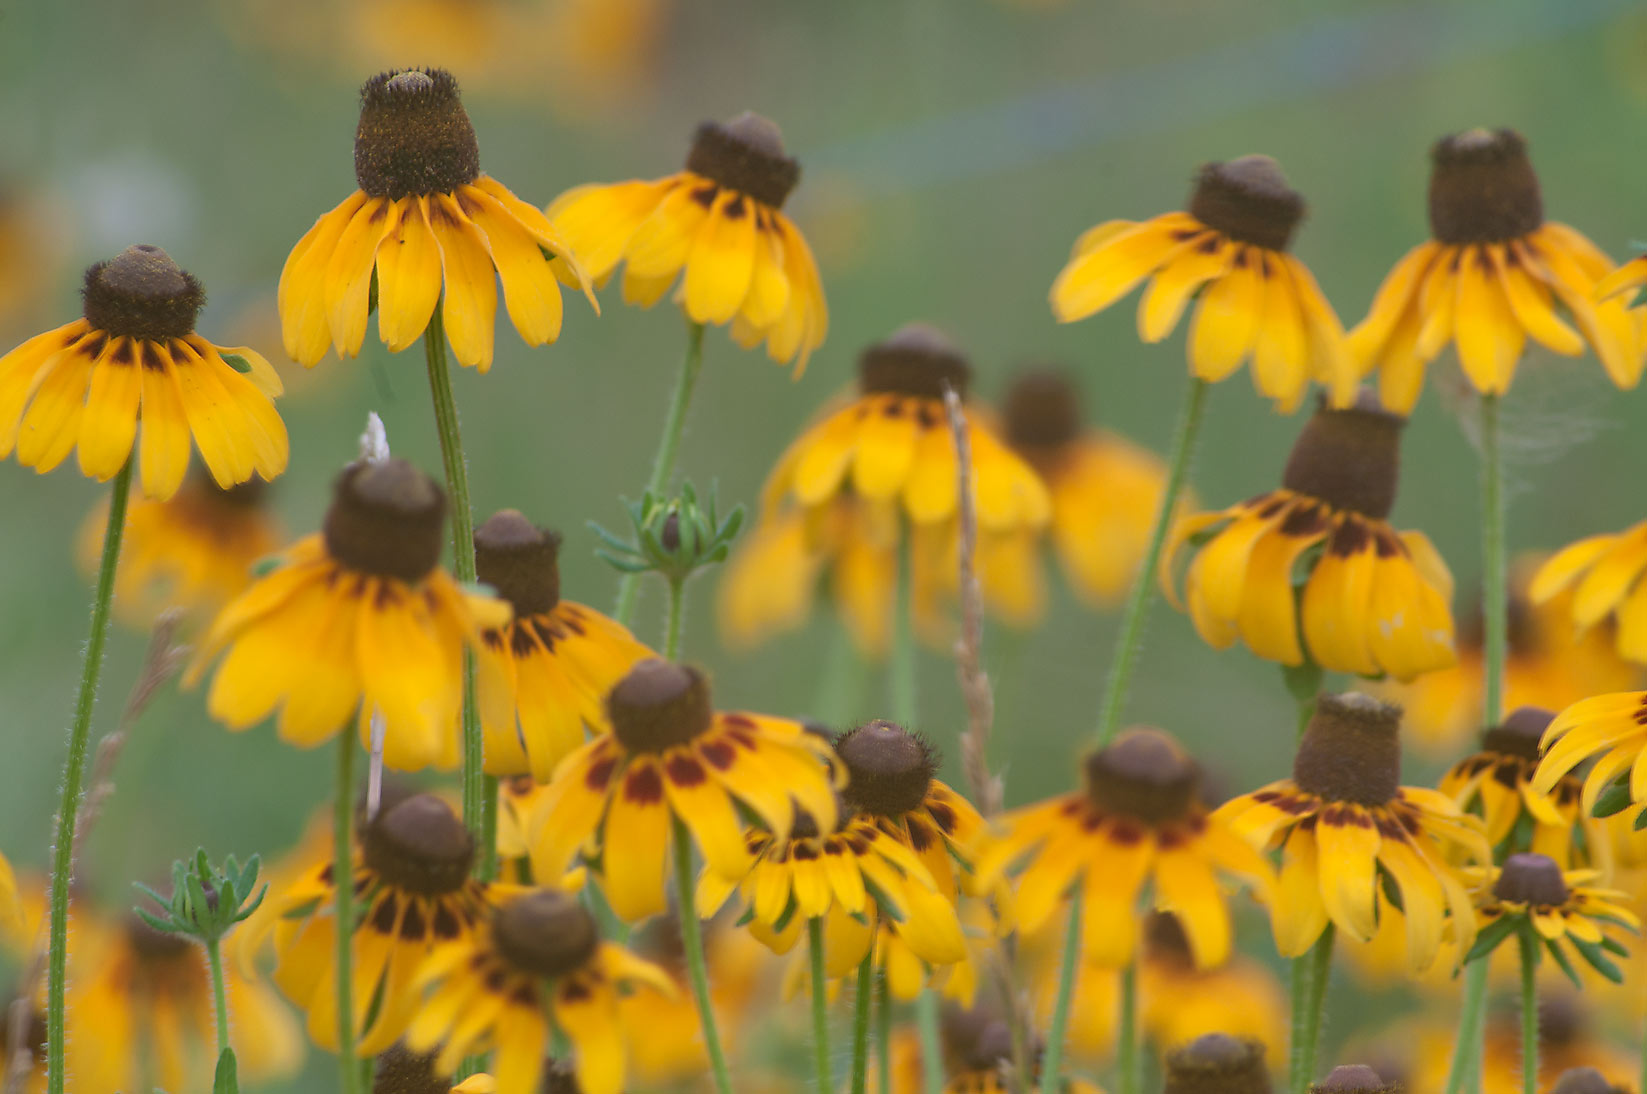 Black Eyed Susan flowers near Rd. FM 60 near Lake Somerville. Texas